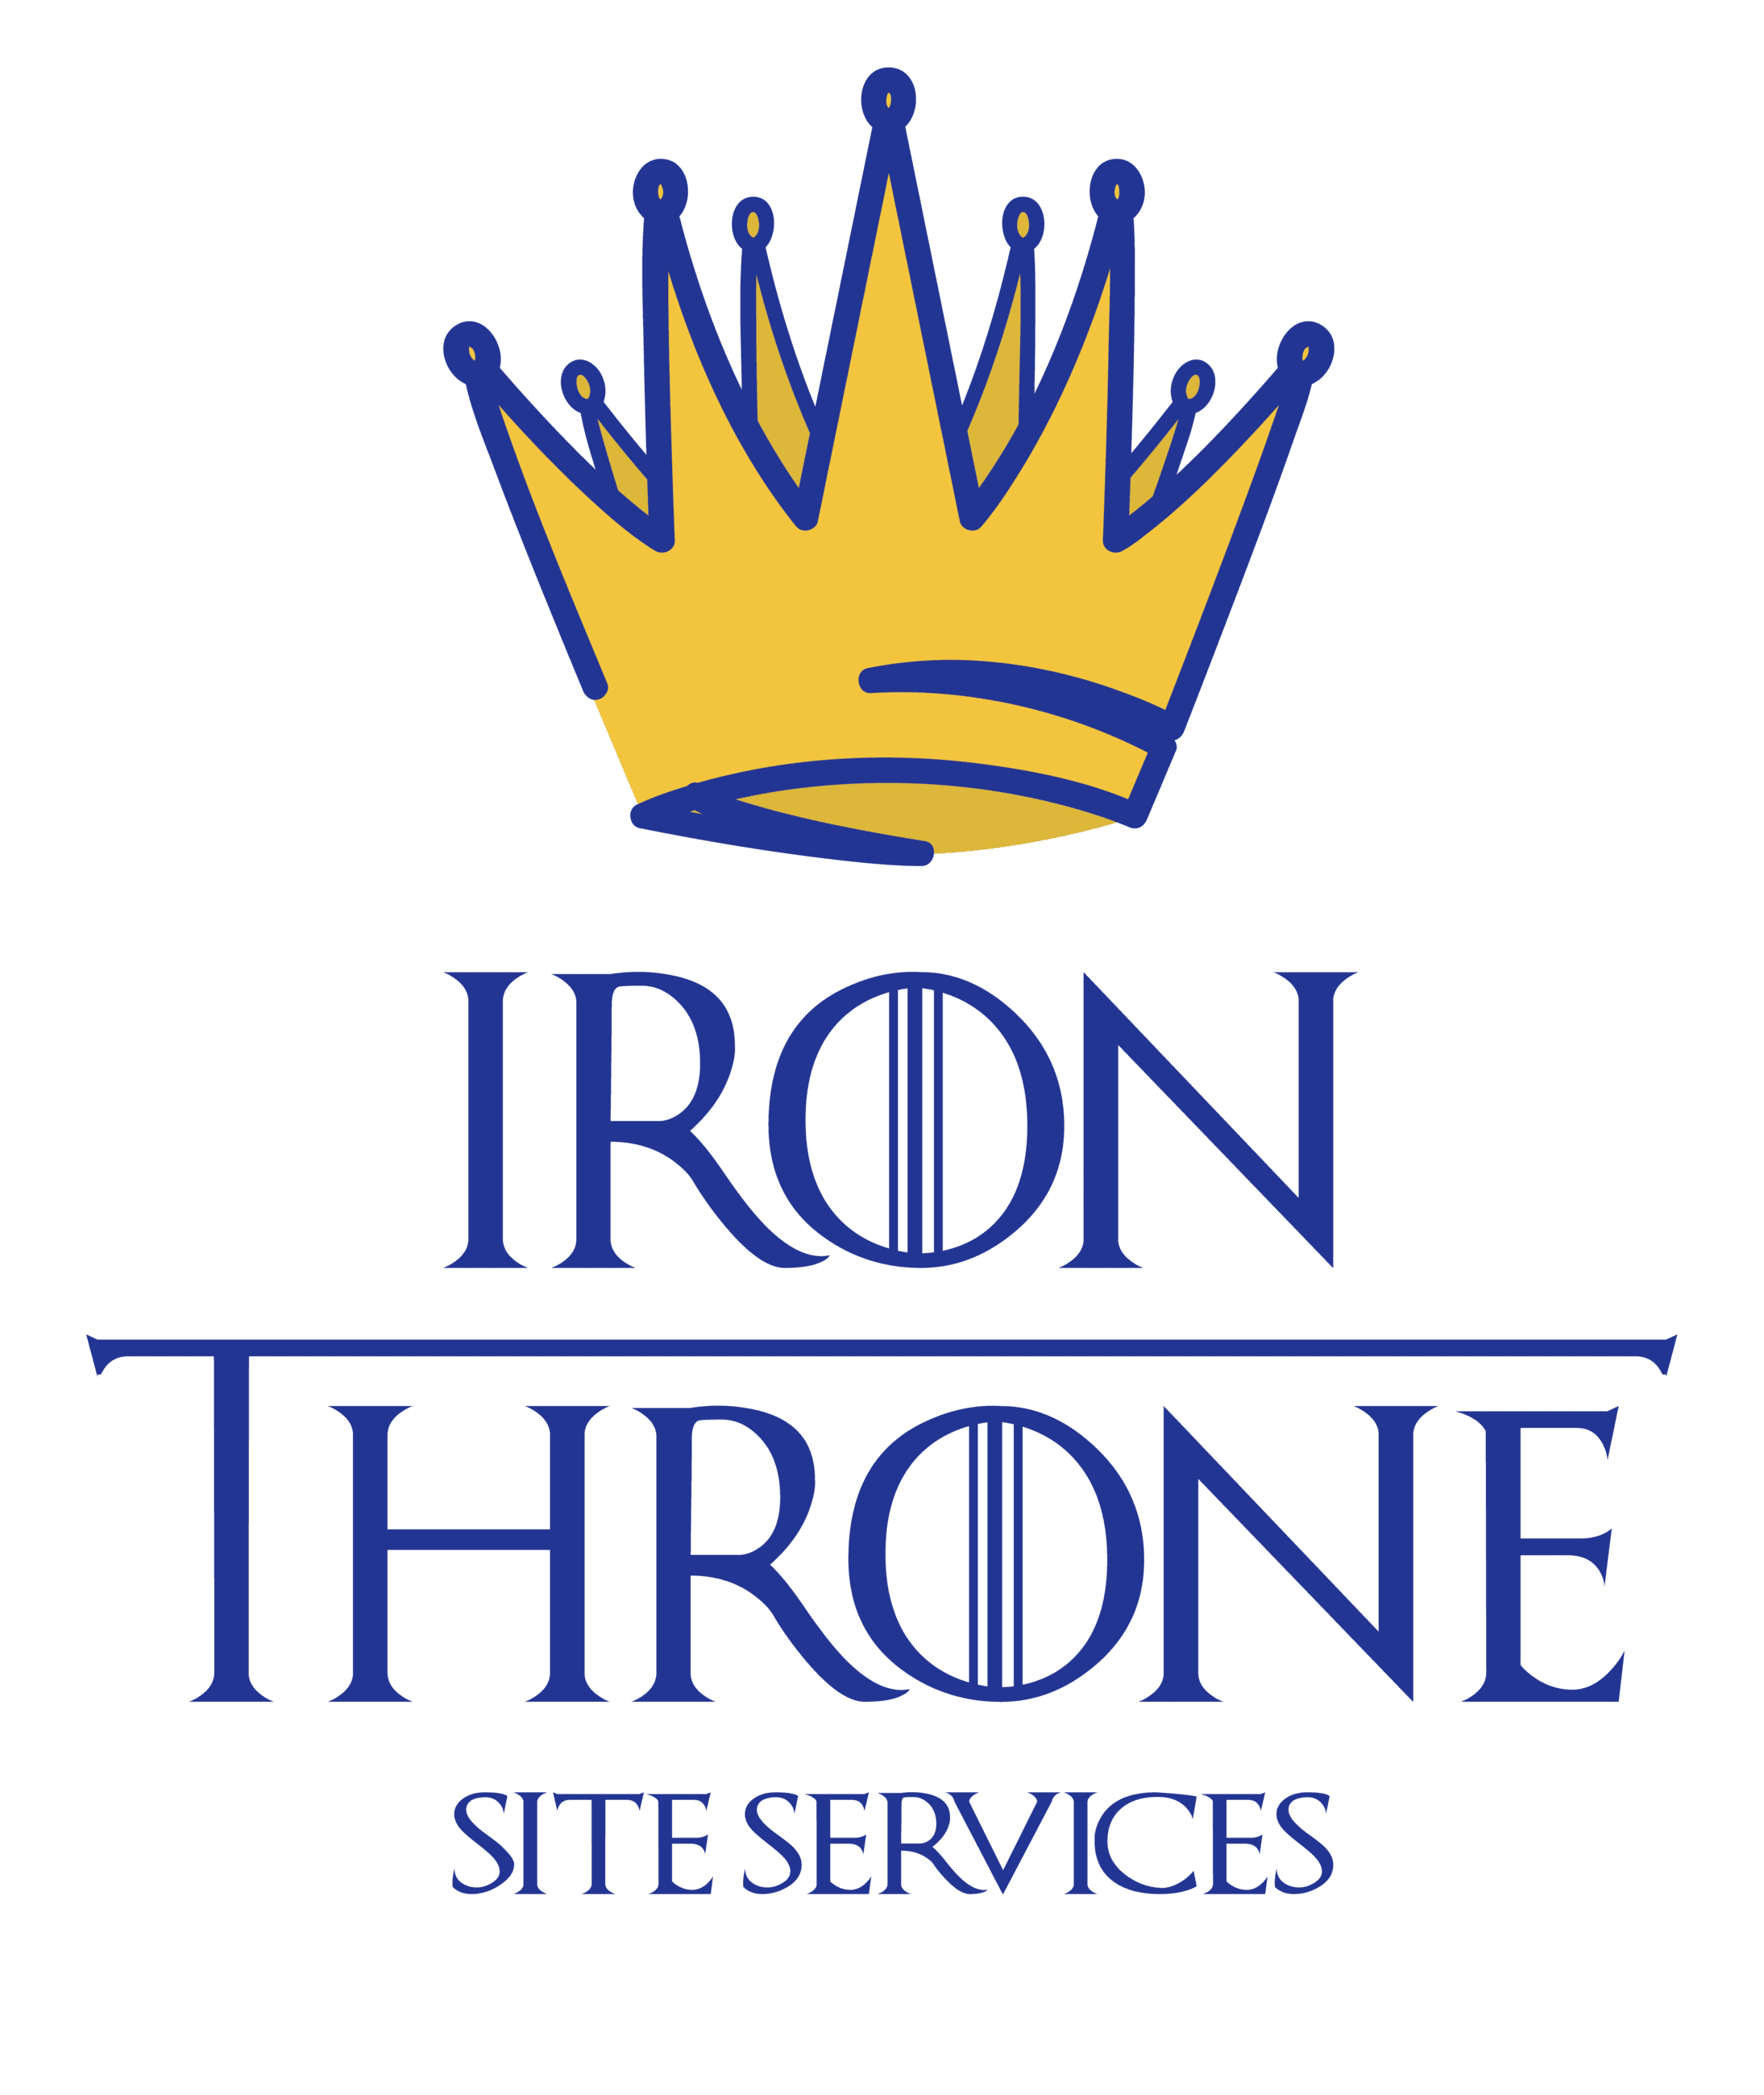 Iron Throne letters with a yellow crown